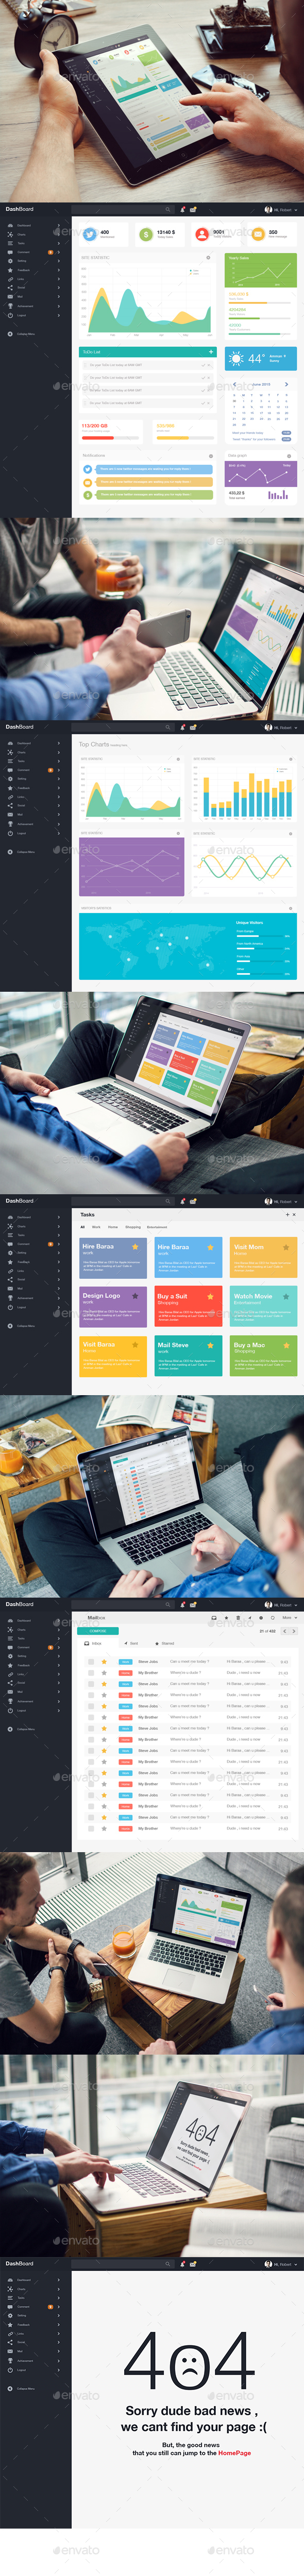 Dashboard Admin Panel (User Interfaces)